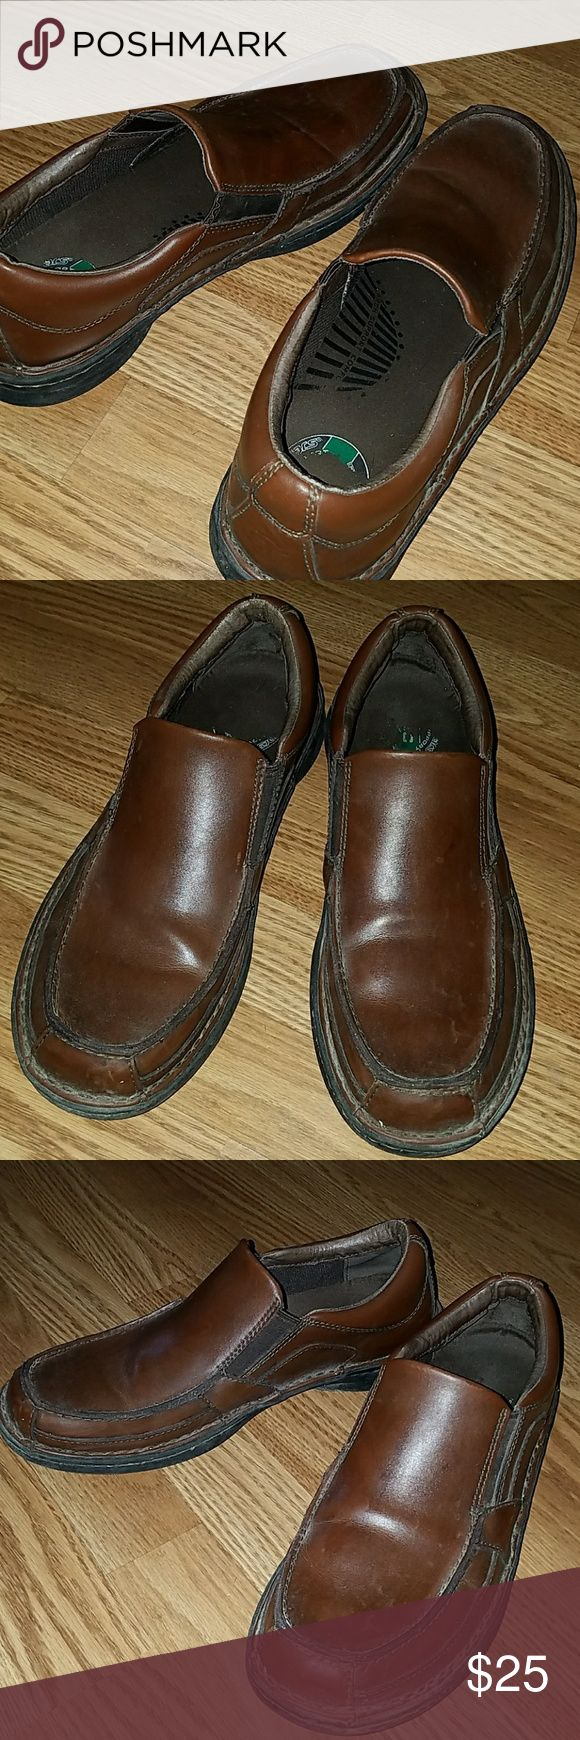 Skechers Men Shoe 12M Brown Skechers comfort technology. 12M perfect for work, worn for multiple times. Skechers Shoes Loafers & Slip-Ons